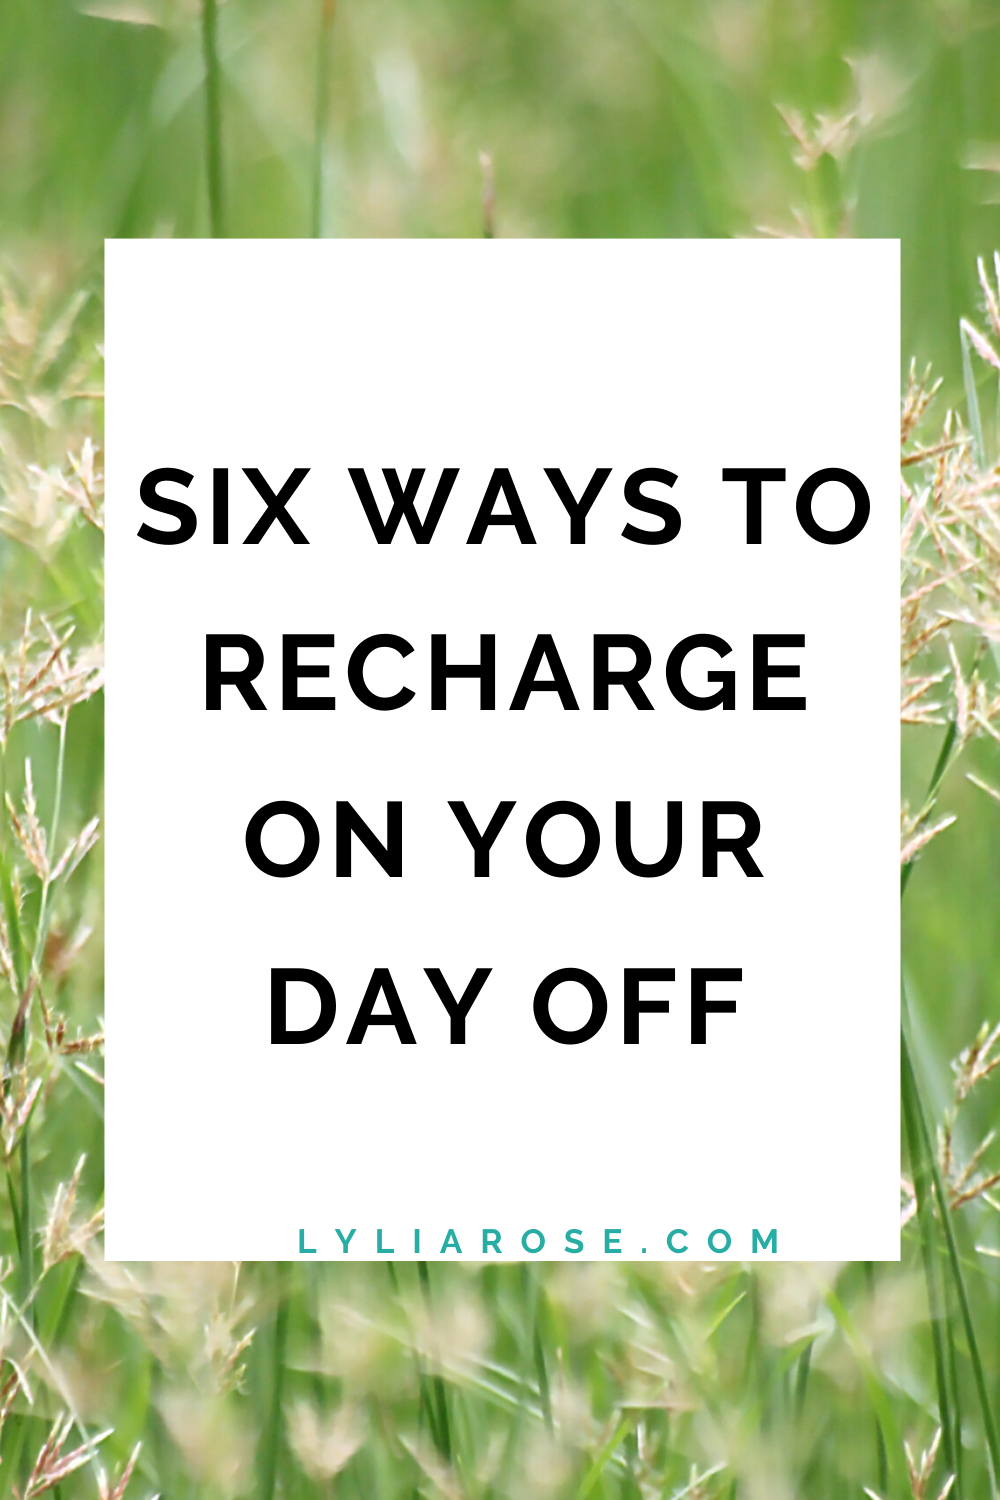 Six ways to recharge on your day off (3)